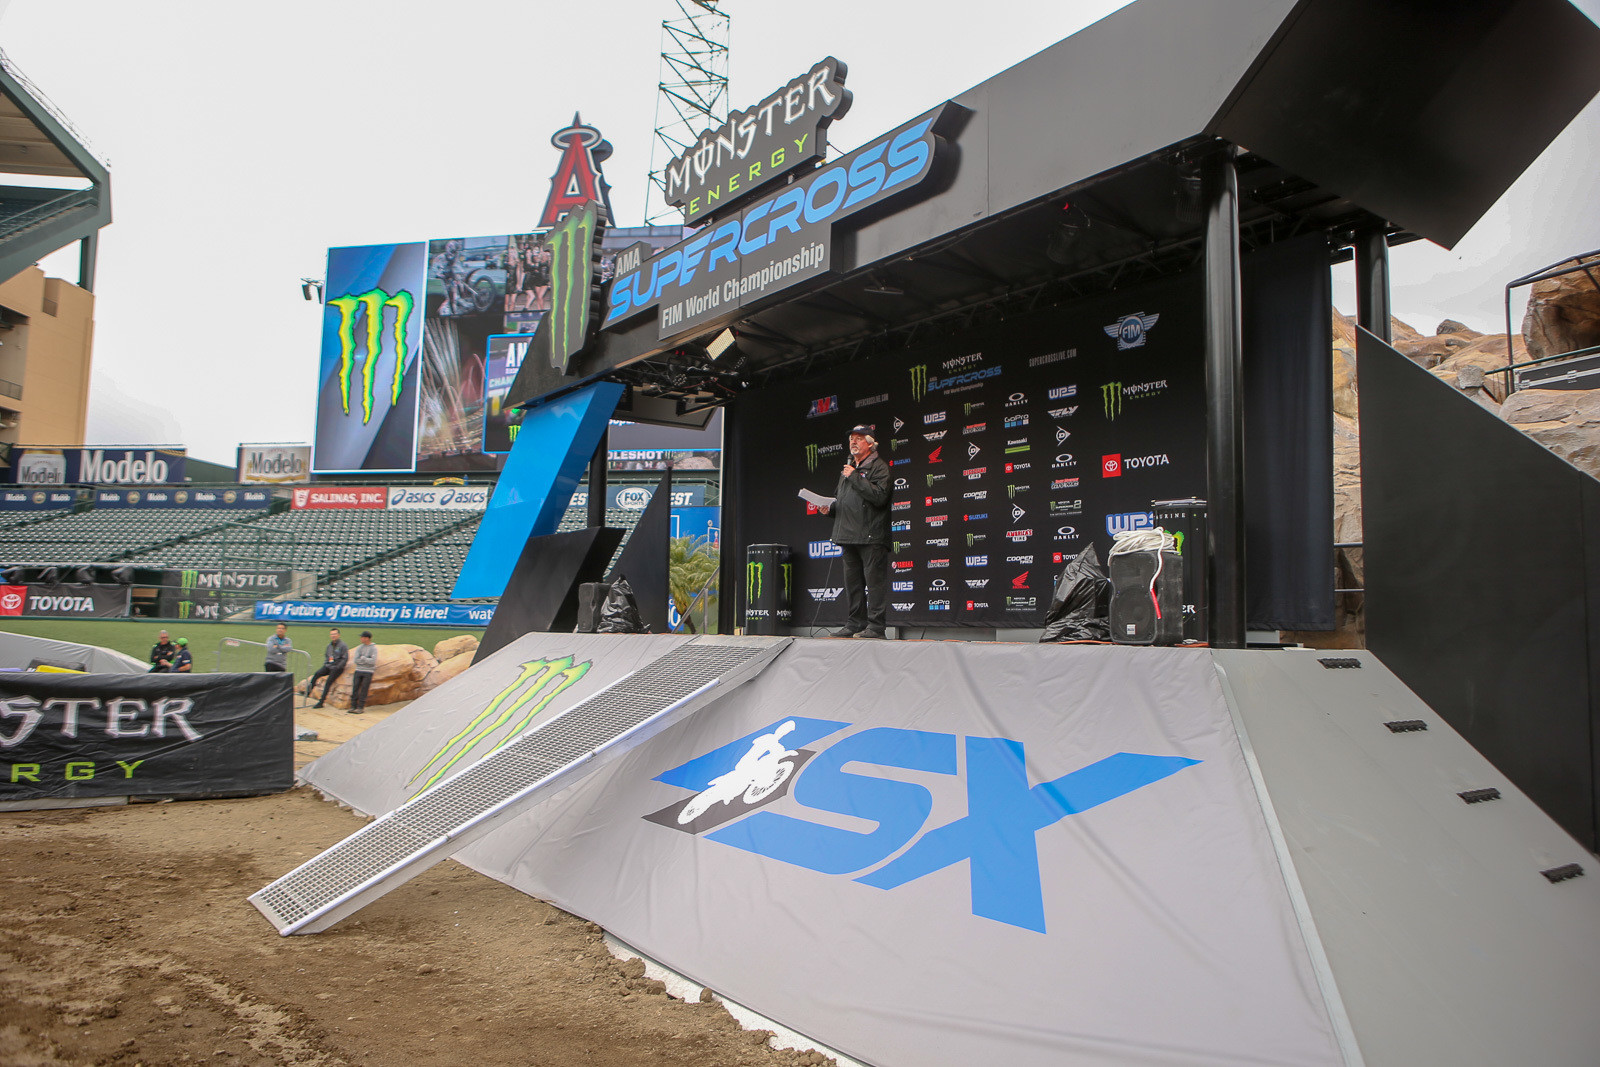 What's new? This podium...and it has a few tricks up its sleeves.